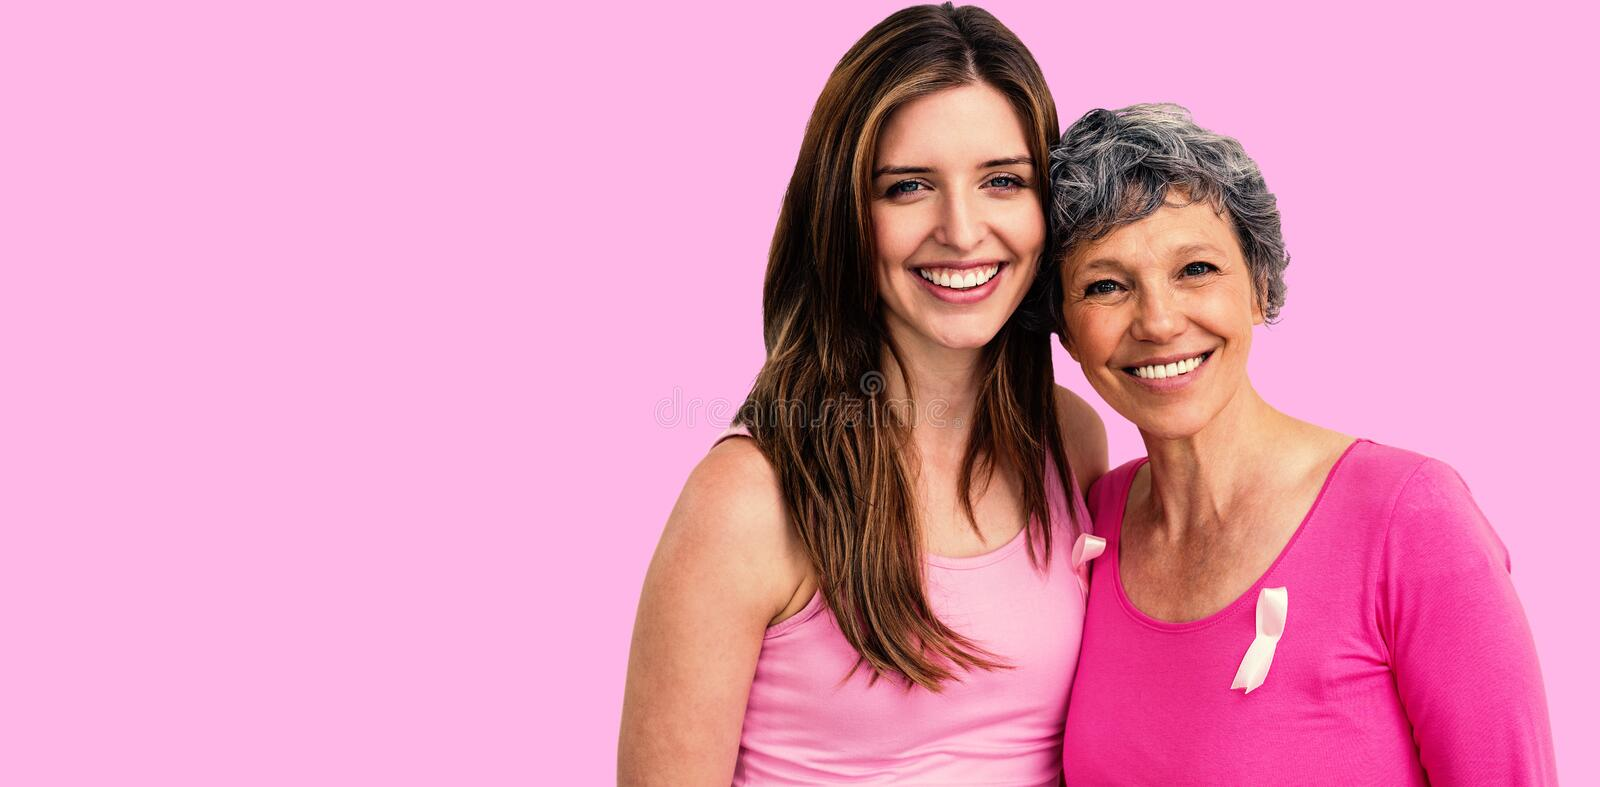 Composite image of smiling women in pink outfits posing for breast cancer awareness. Smiling women in pink outfits posing for breast cancer awareness against royalty free stock images